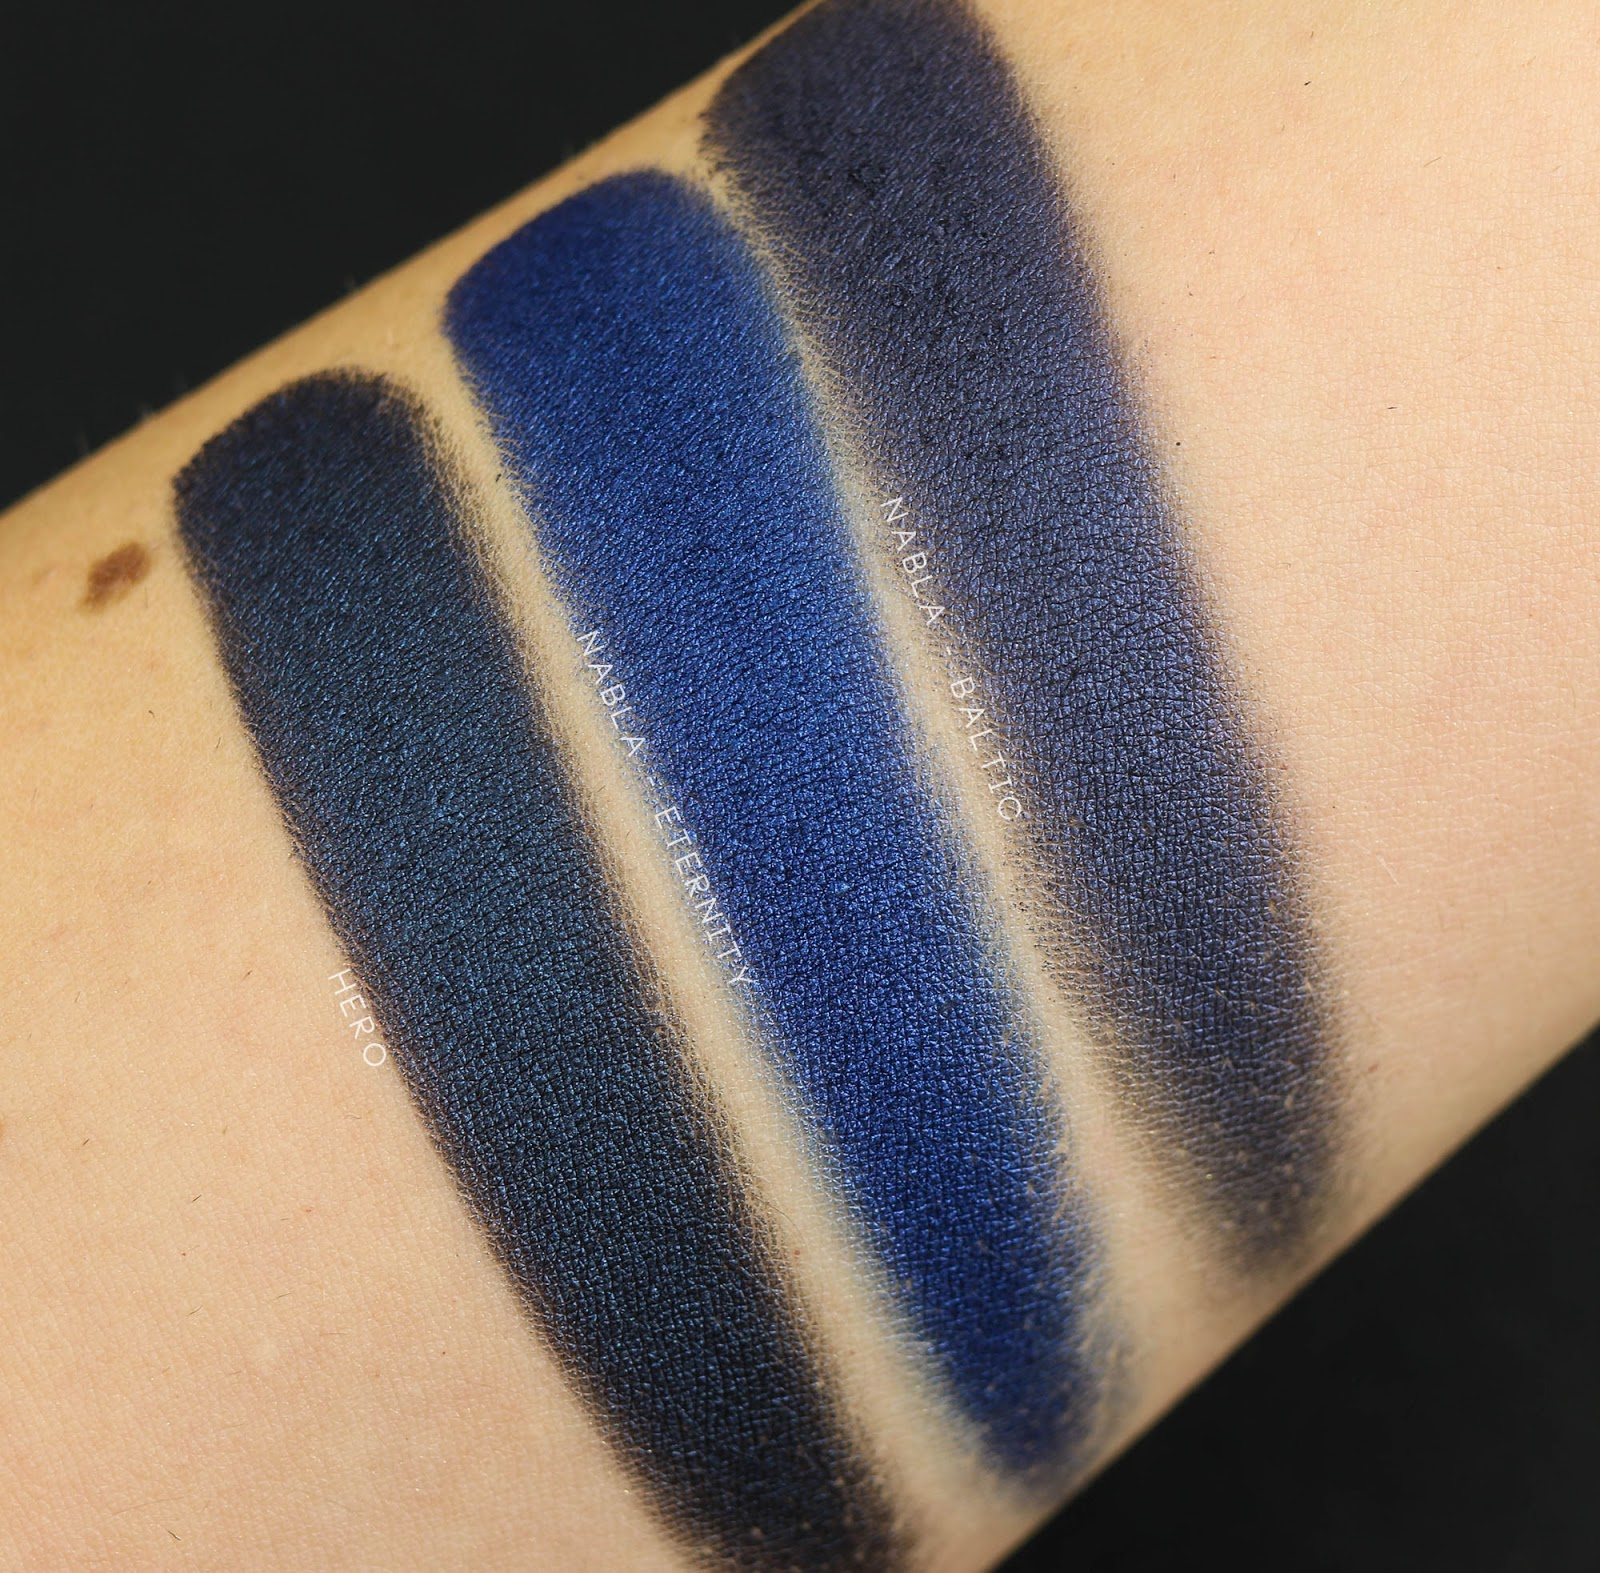 Neve Neogothic Hero swatch review